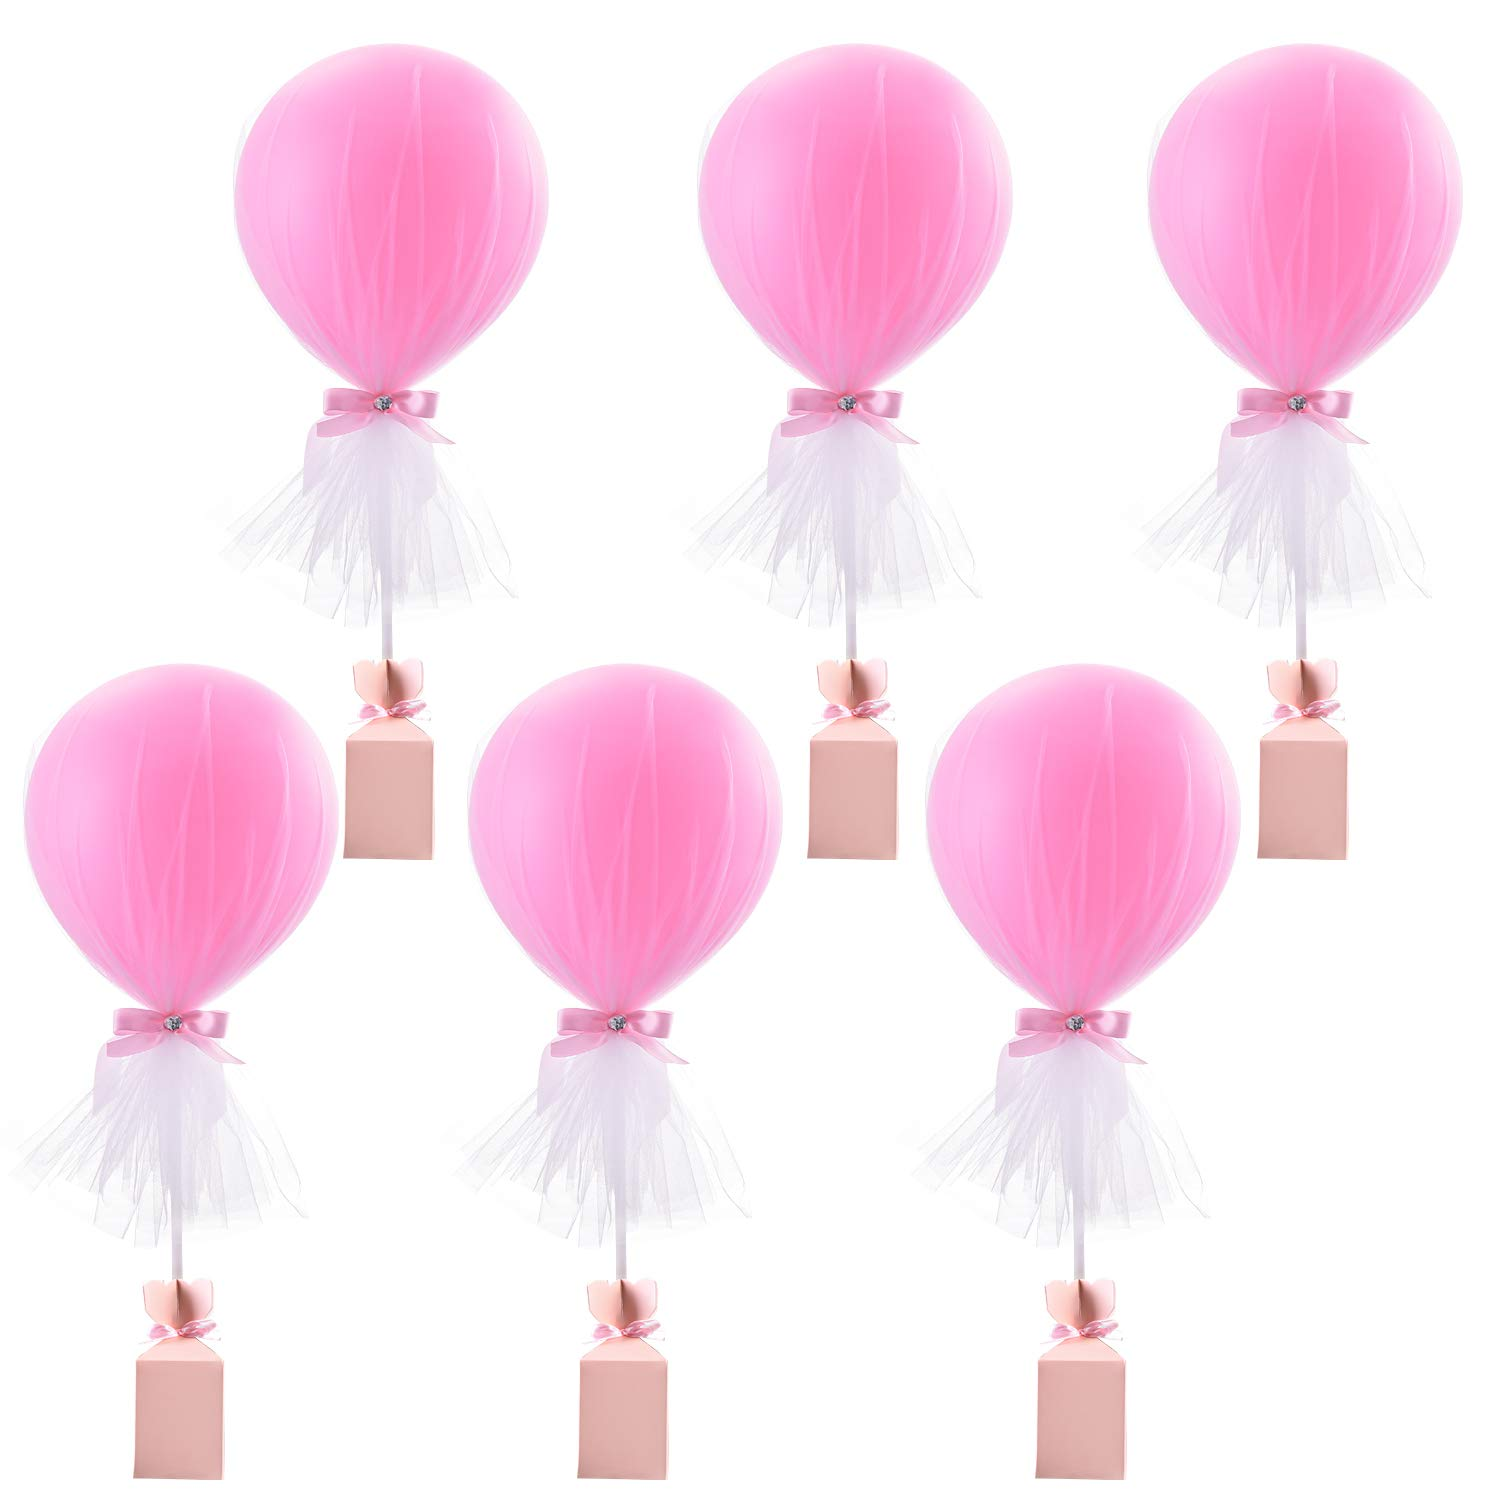 Pink Tulle Balloons Tutu Party Balloon Set with Box Base Balloon Centerpieces for Baby Shower Girl Birthday Wedding Princess Party Table Decorations Supplies,12 Inch Balloon White Tulle Cover,6 Pack